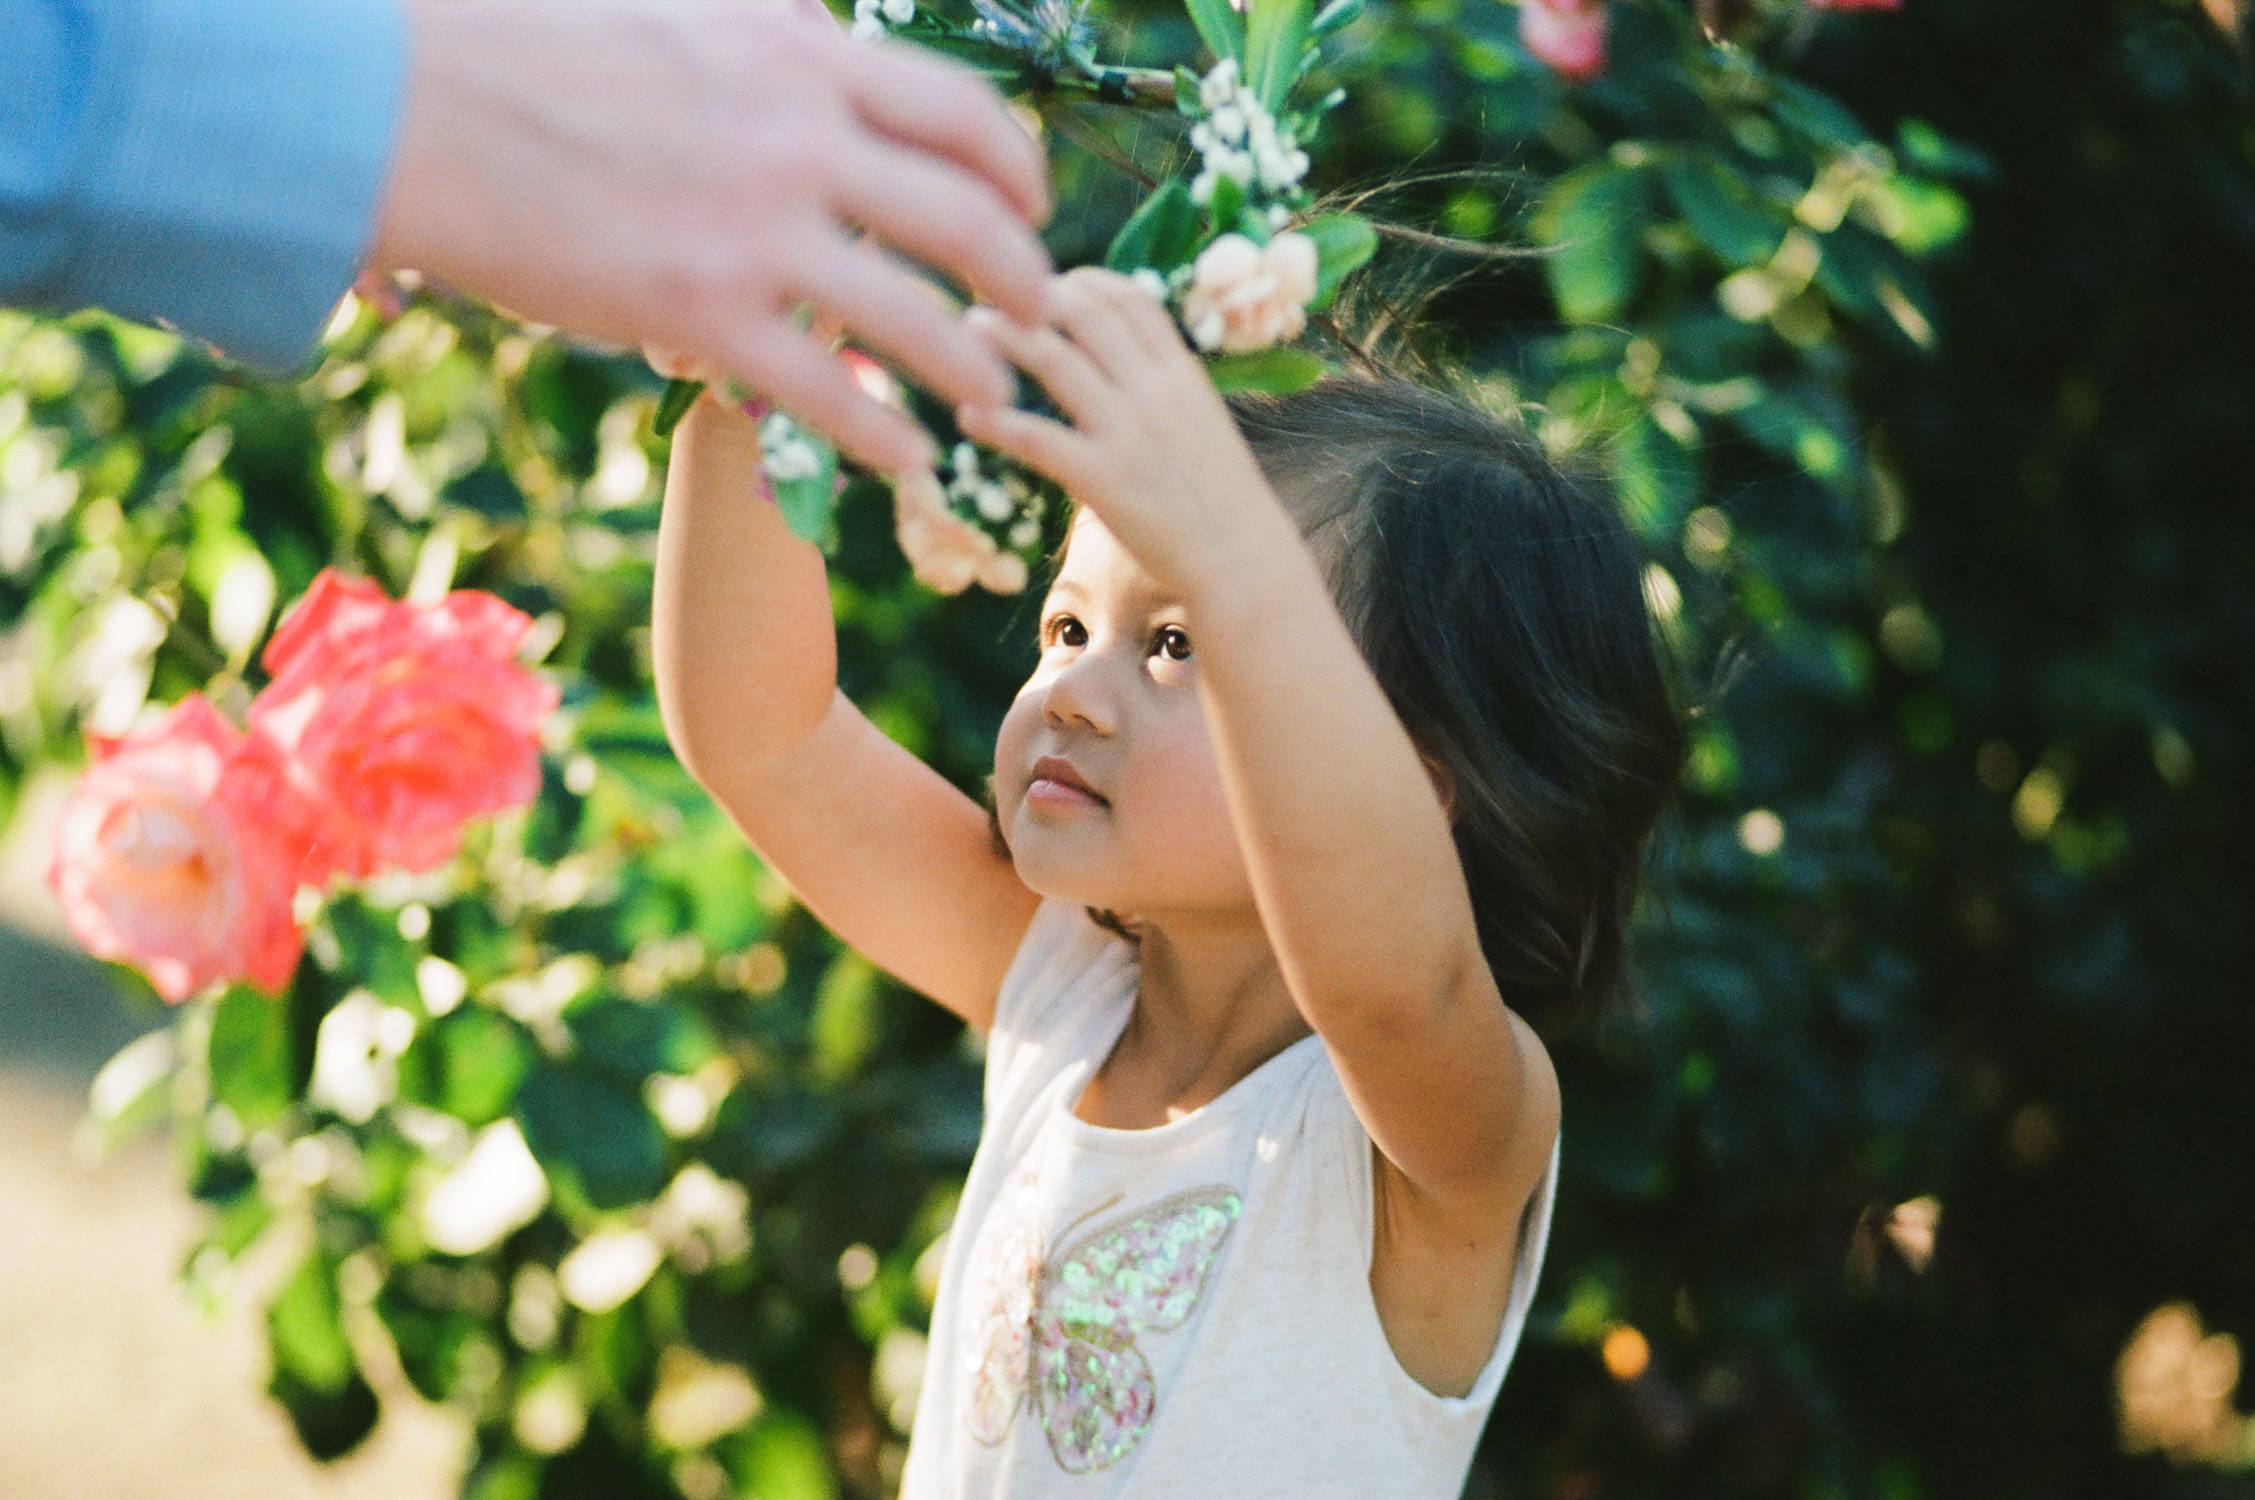 family photography of a toddler by rachel sima photography